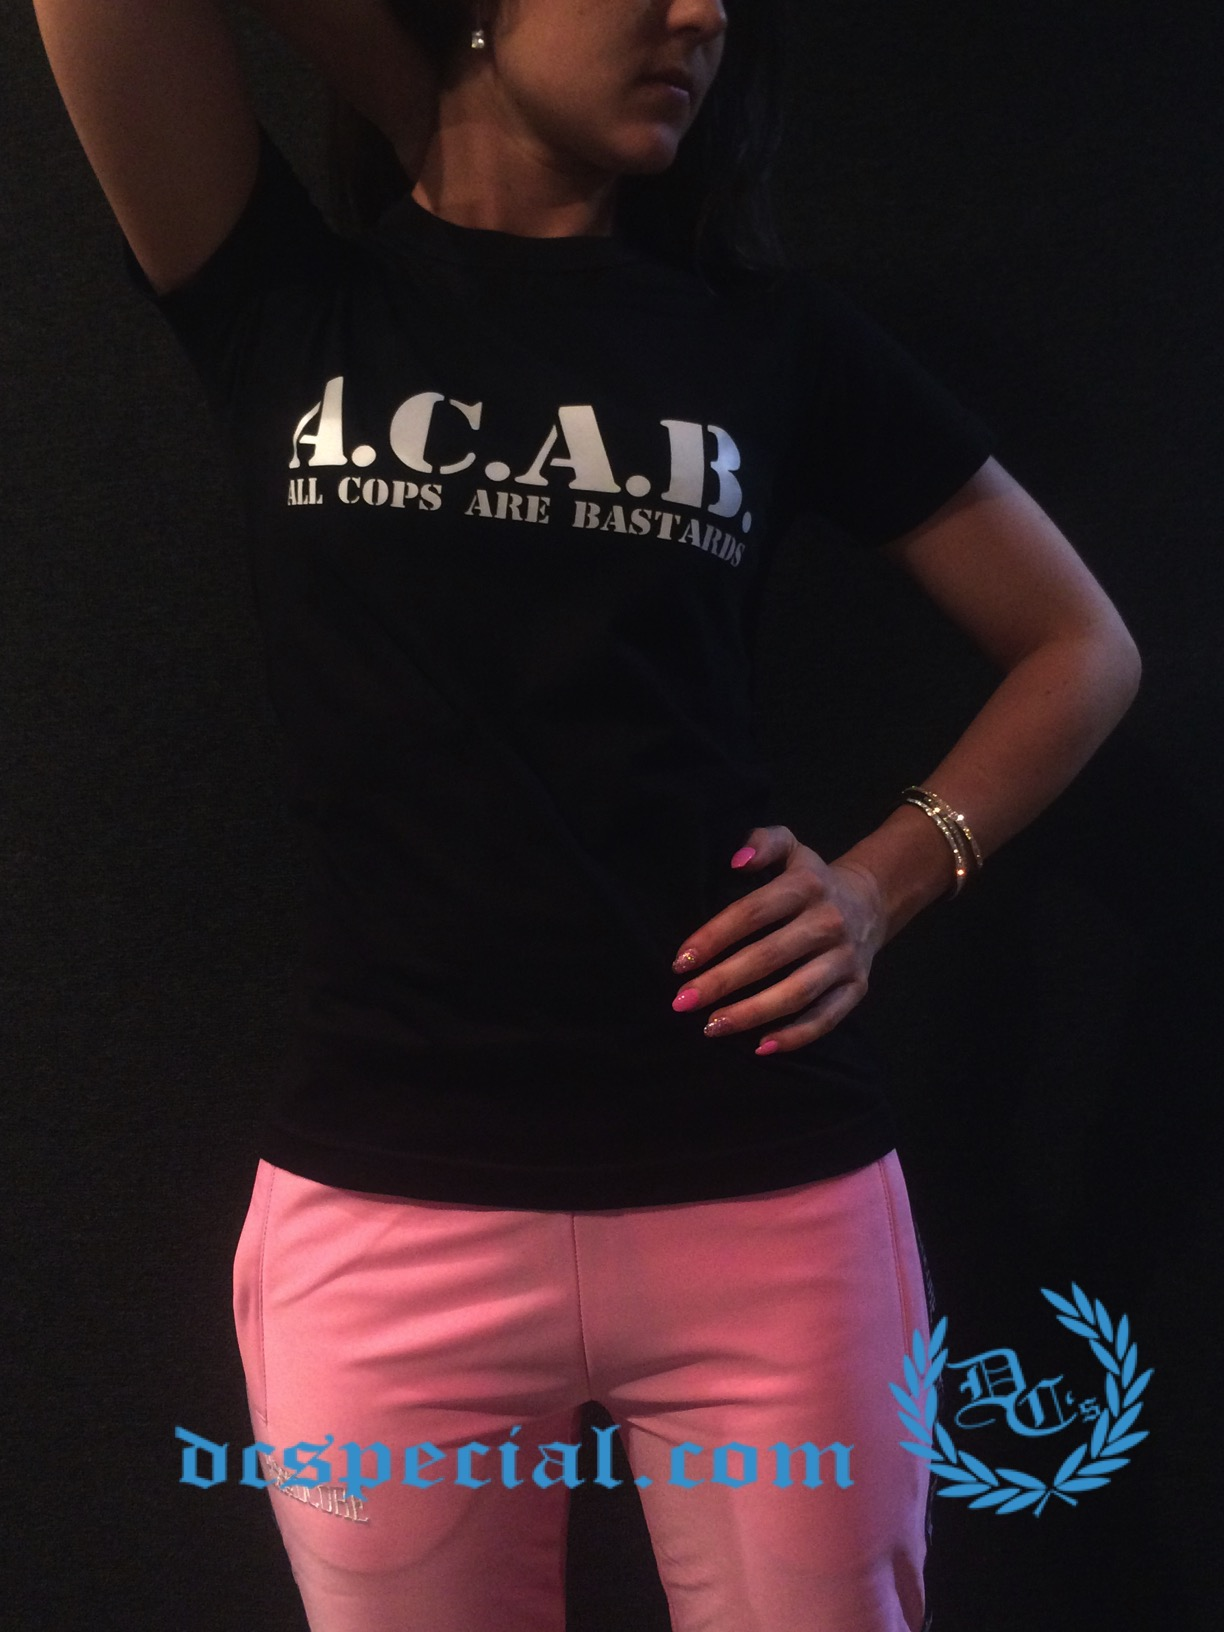 ACAB Women T-shirt 'All Cops Are Bastards'